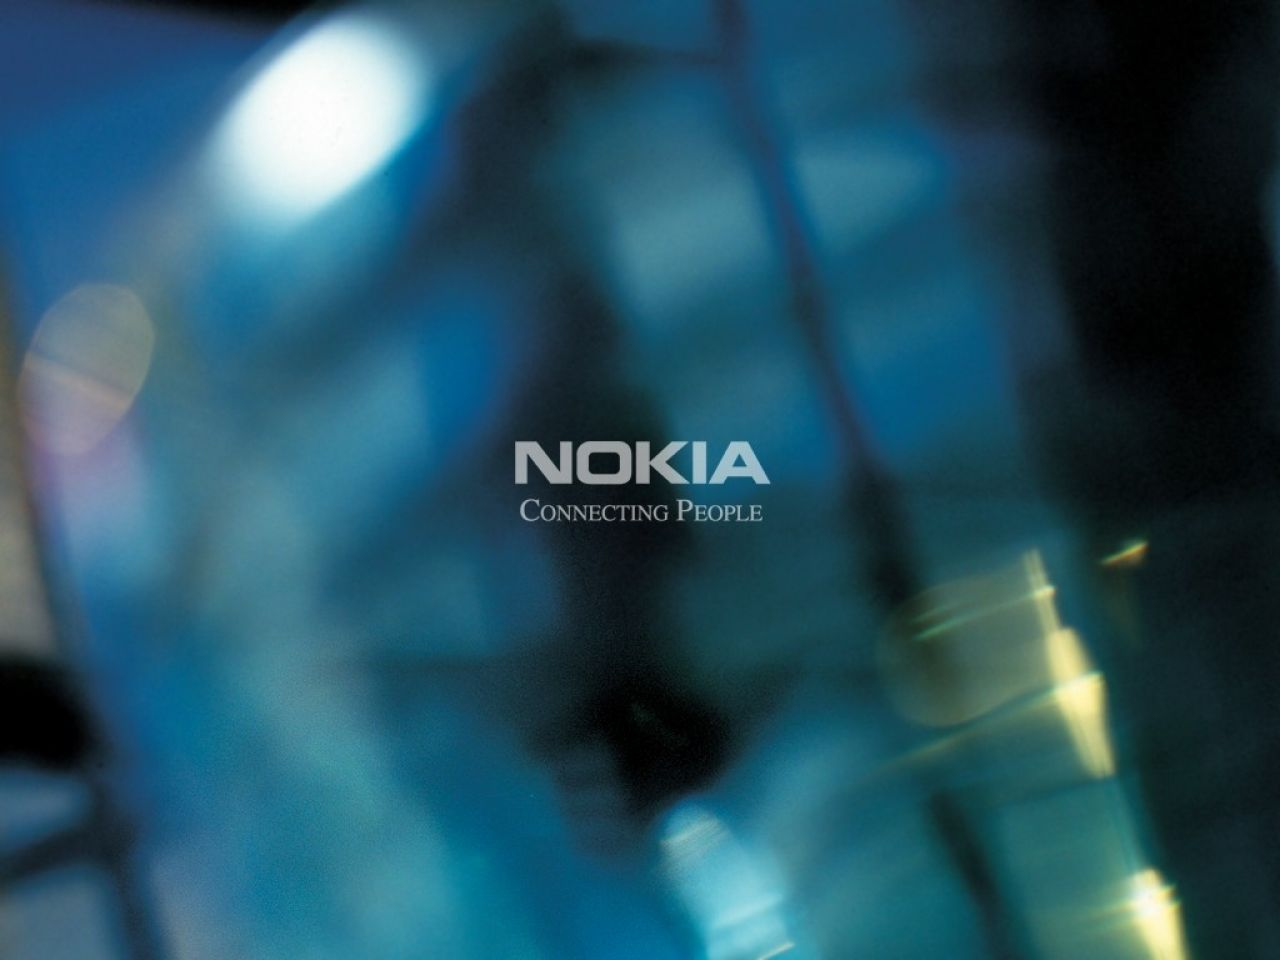 Nokia Mobile Phone Wallpaper Download cool HD wallpapers here 1280x960